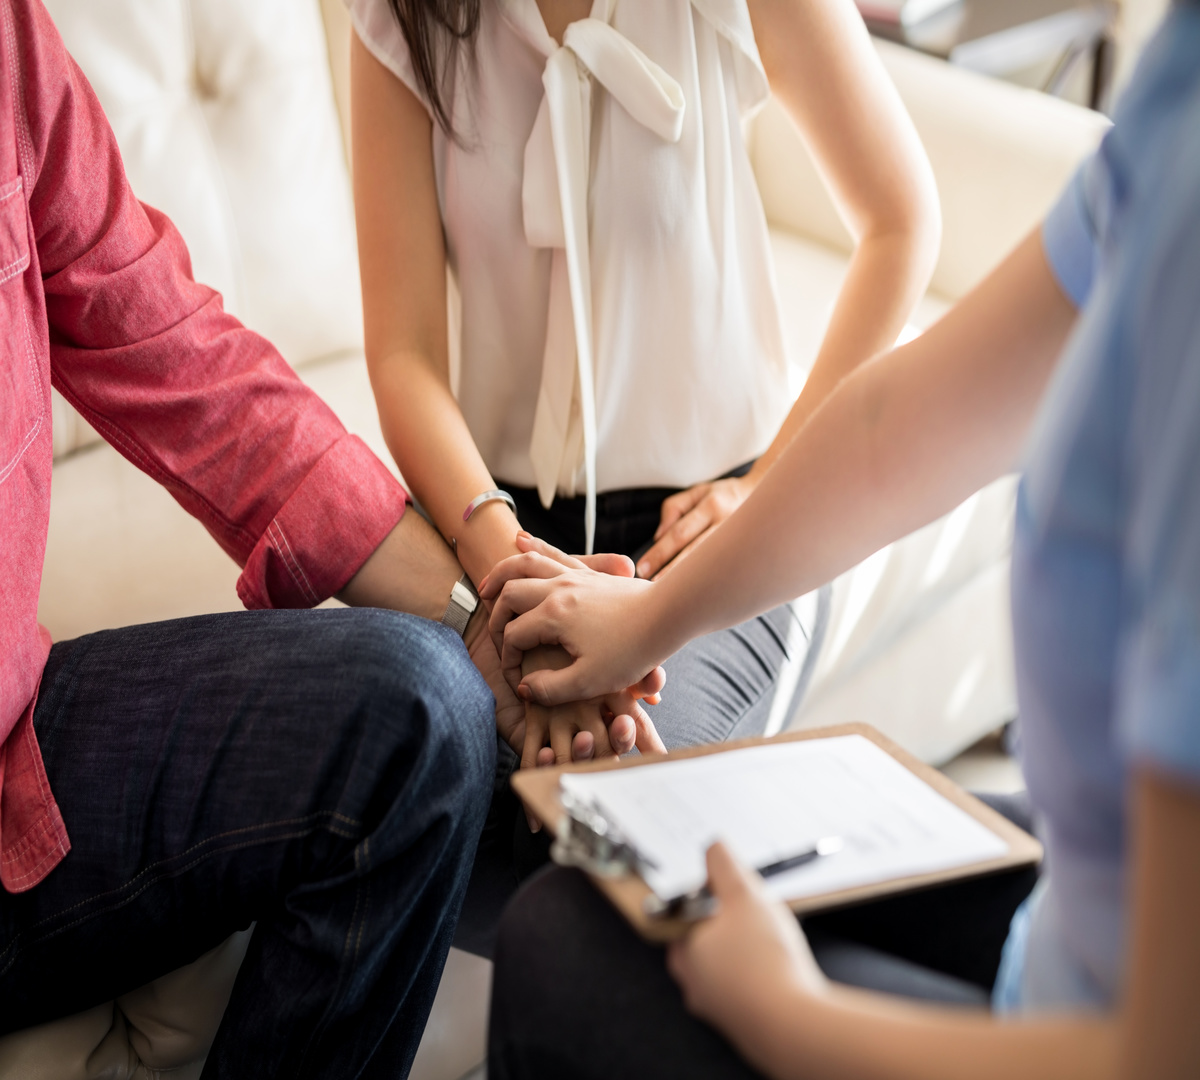 Psychologist holding hands of couple during a therapy session. Marriage counselor supporting young couple.